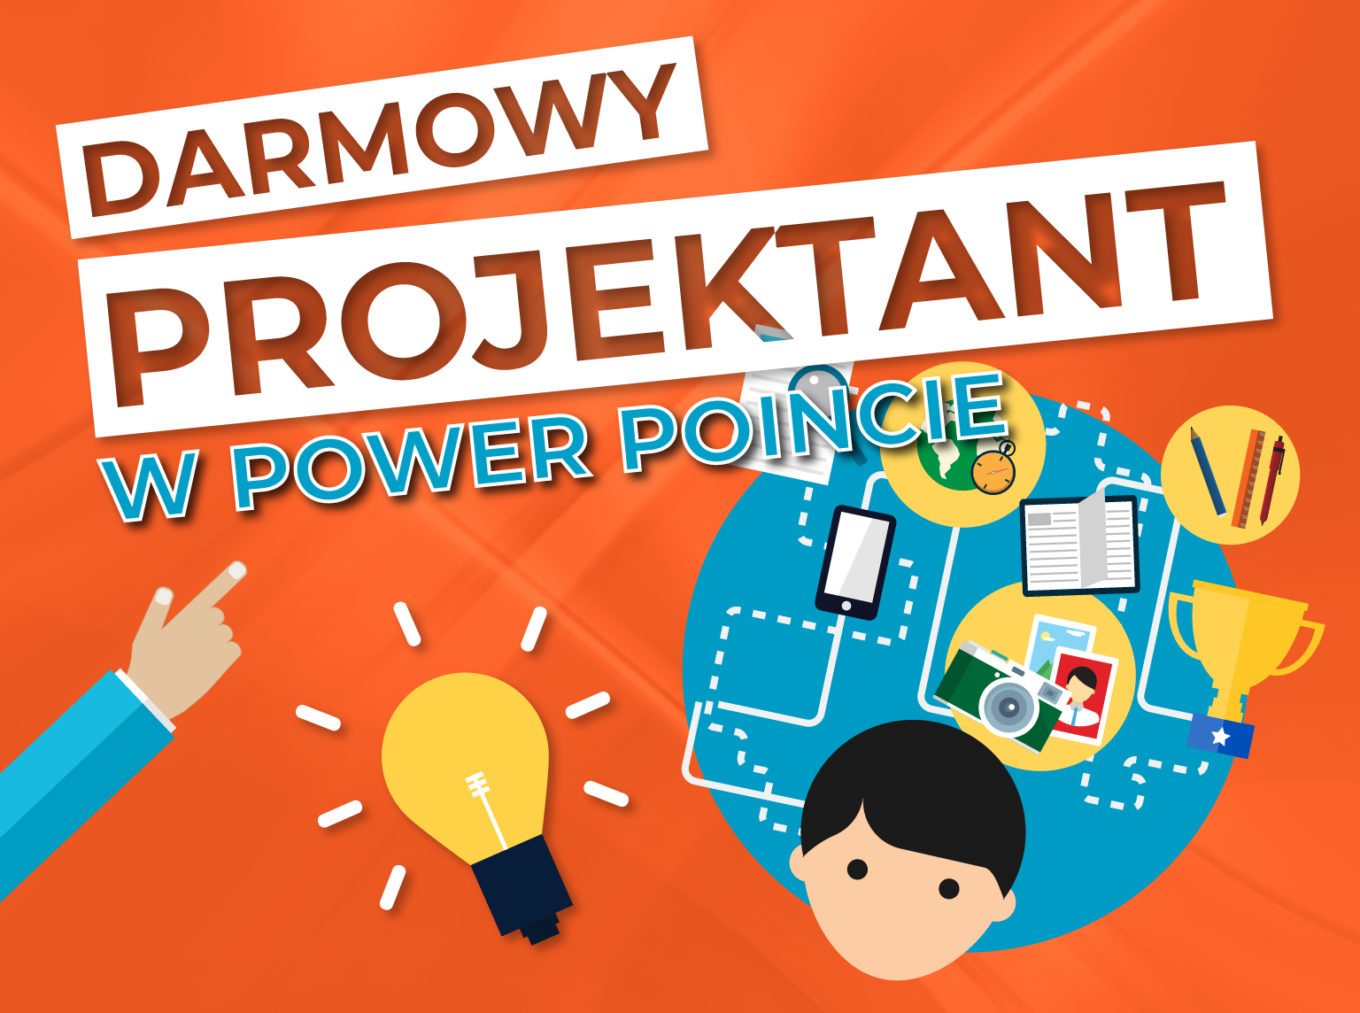 Darmowy projektant w Power Point